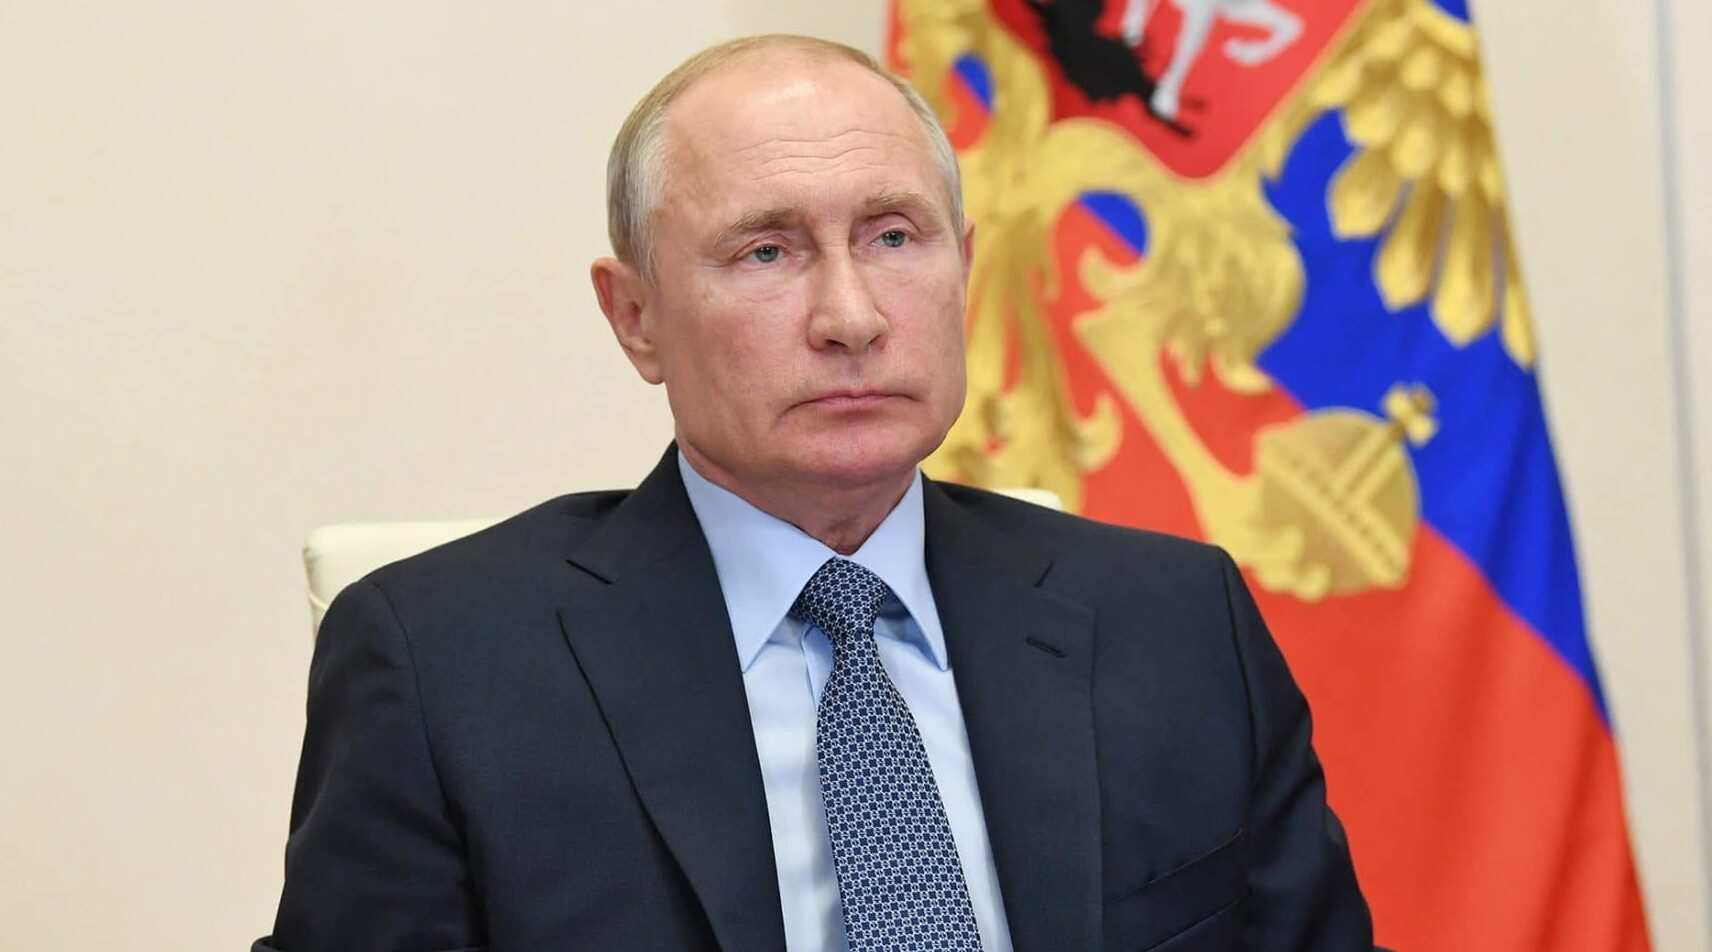 Russia warns west not to 'play with fire' with Navalny sanctions